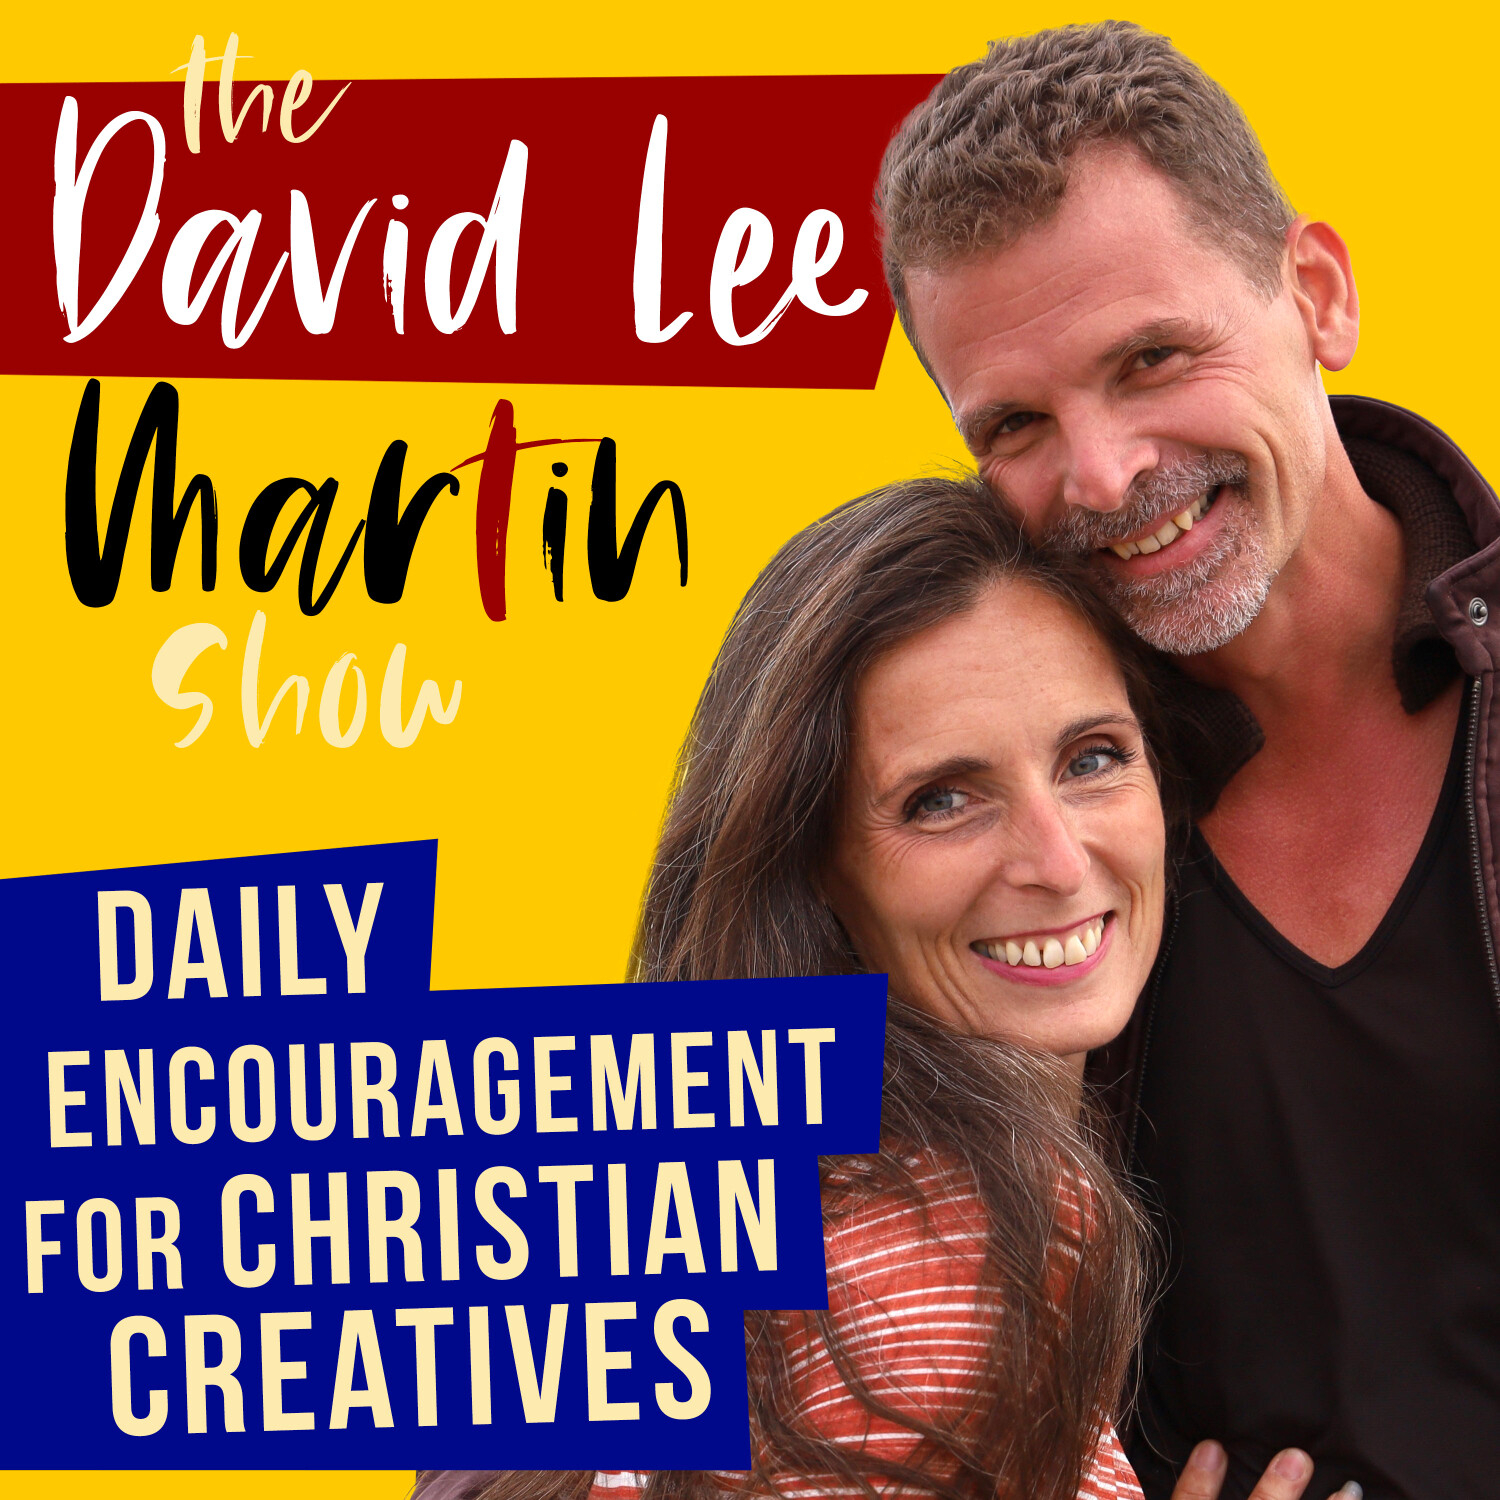 The David Lee Martin Show - Daily Encouragement For Christian Creatives